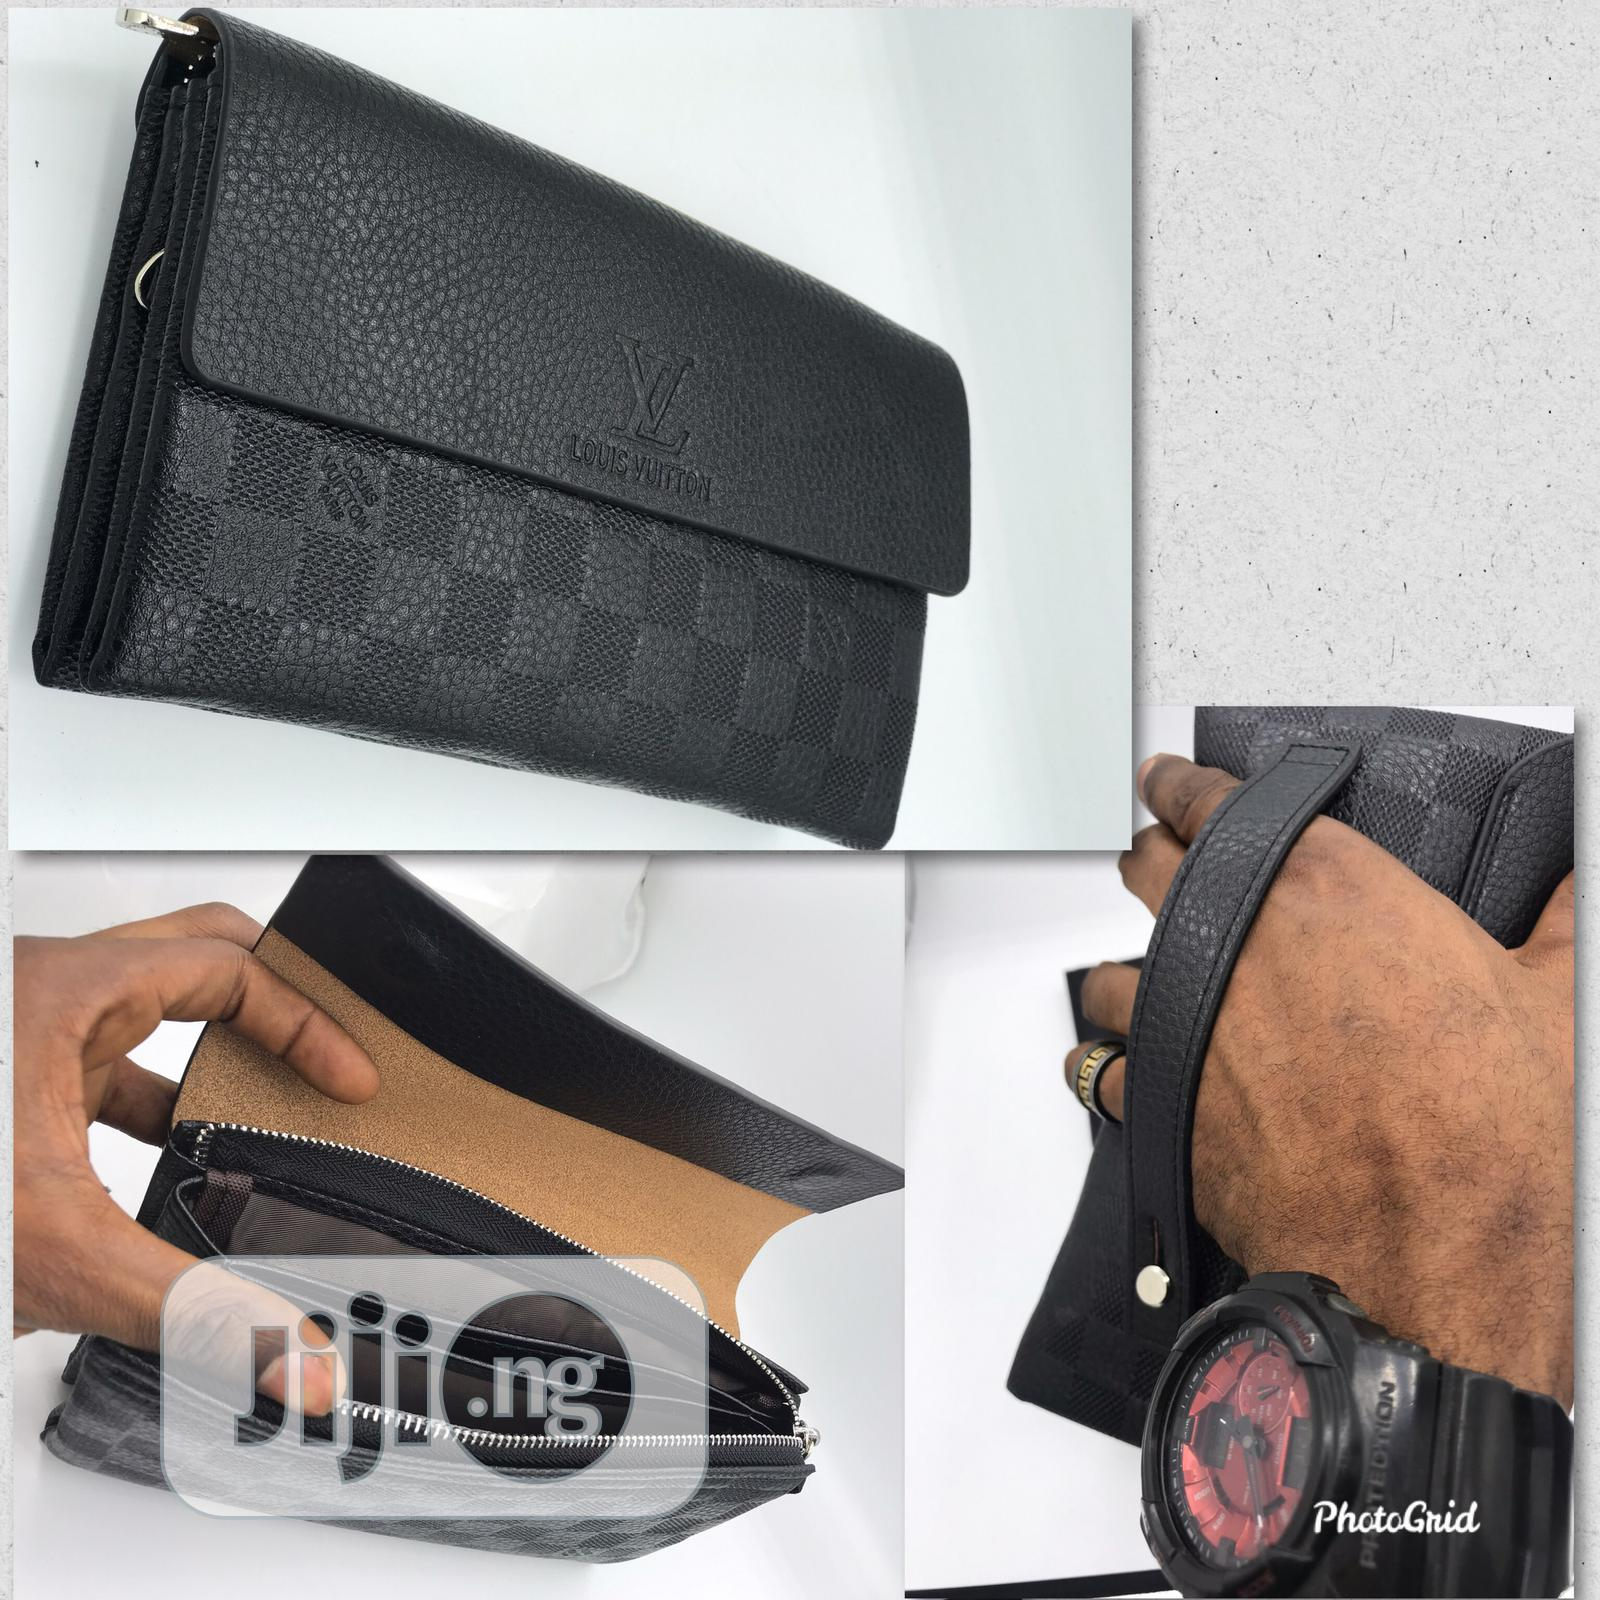 Louis Vuitton Leather Pruse Wallet Available as Seen Order Yours Now